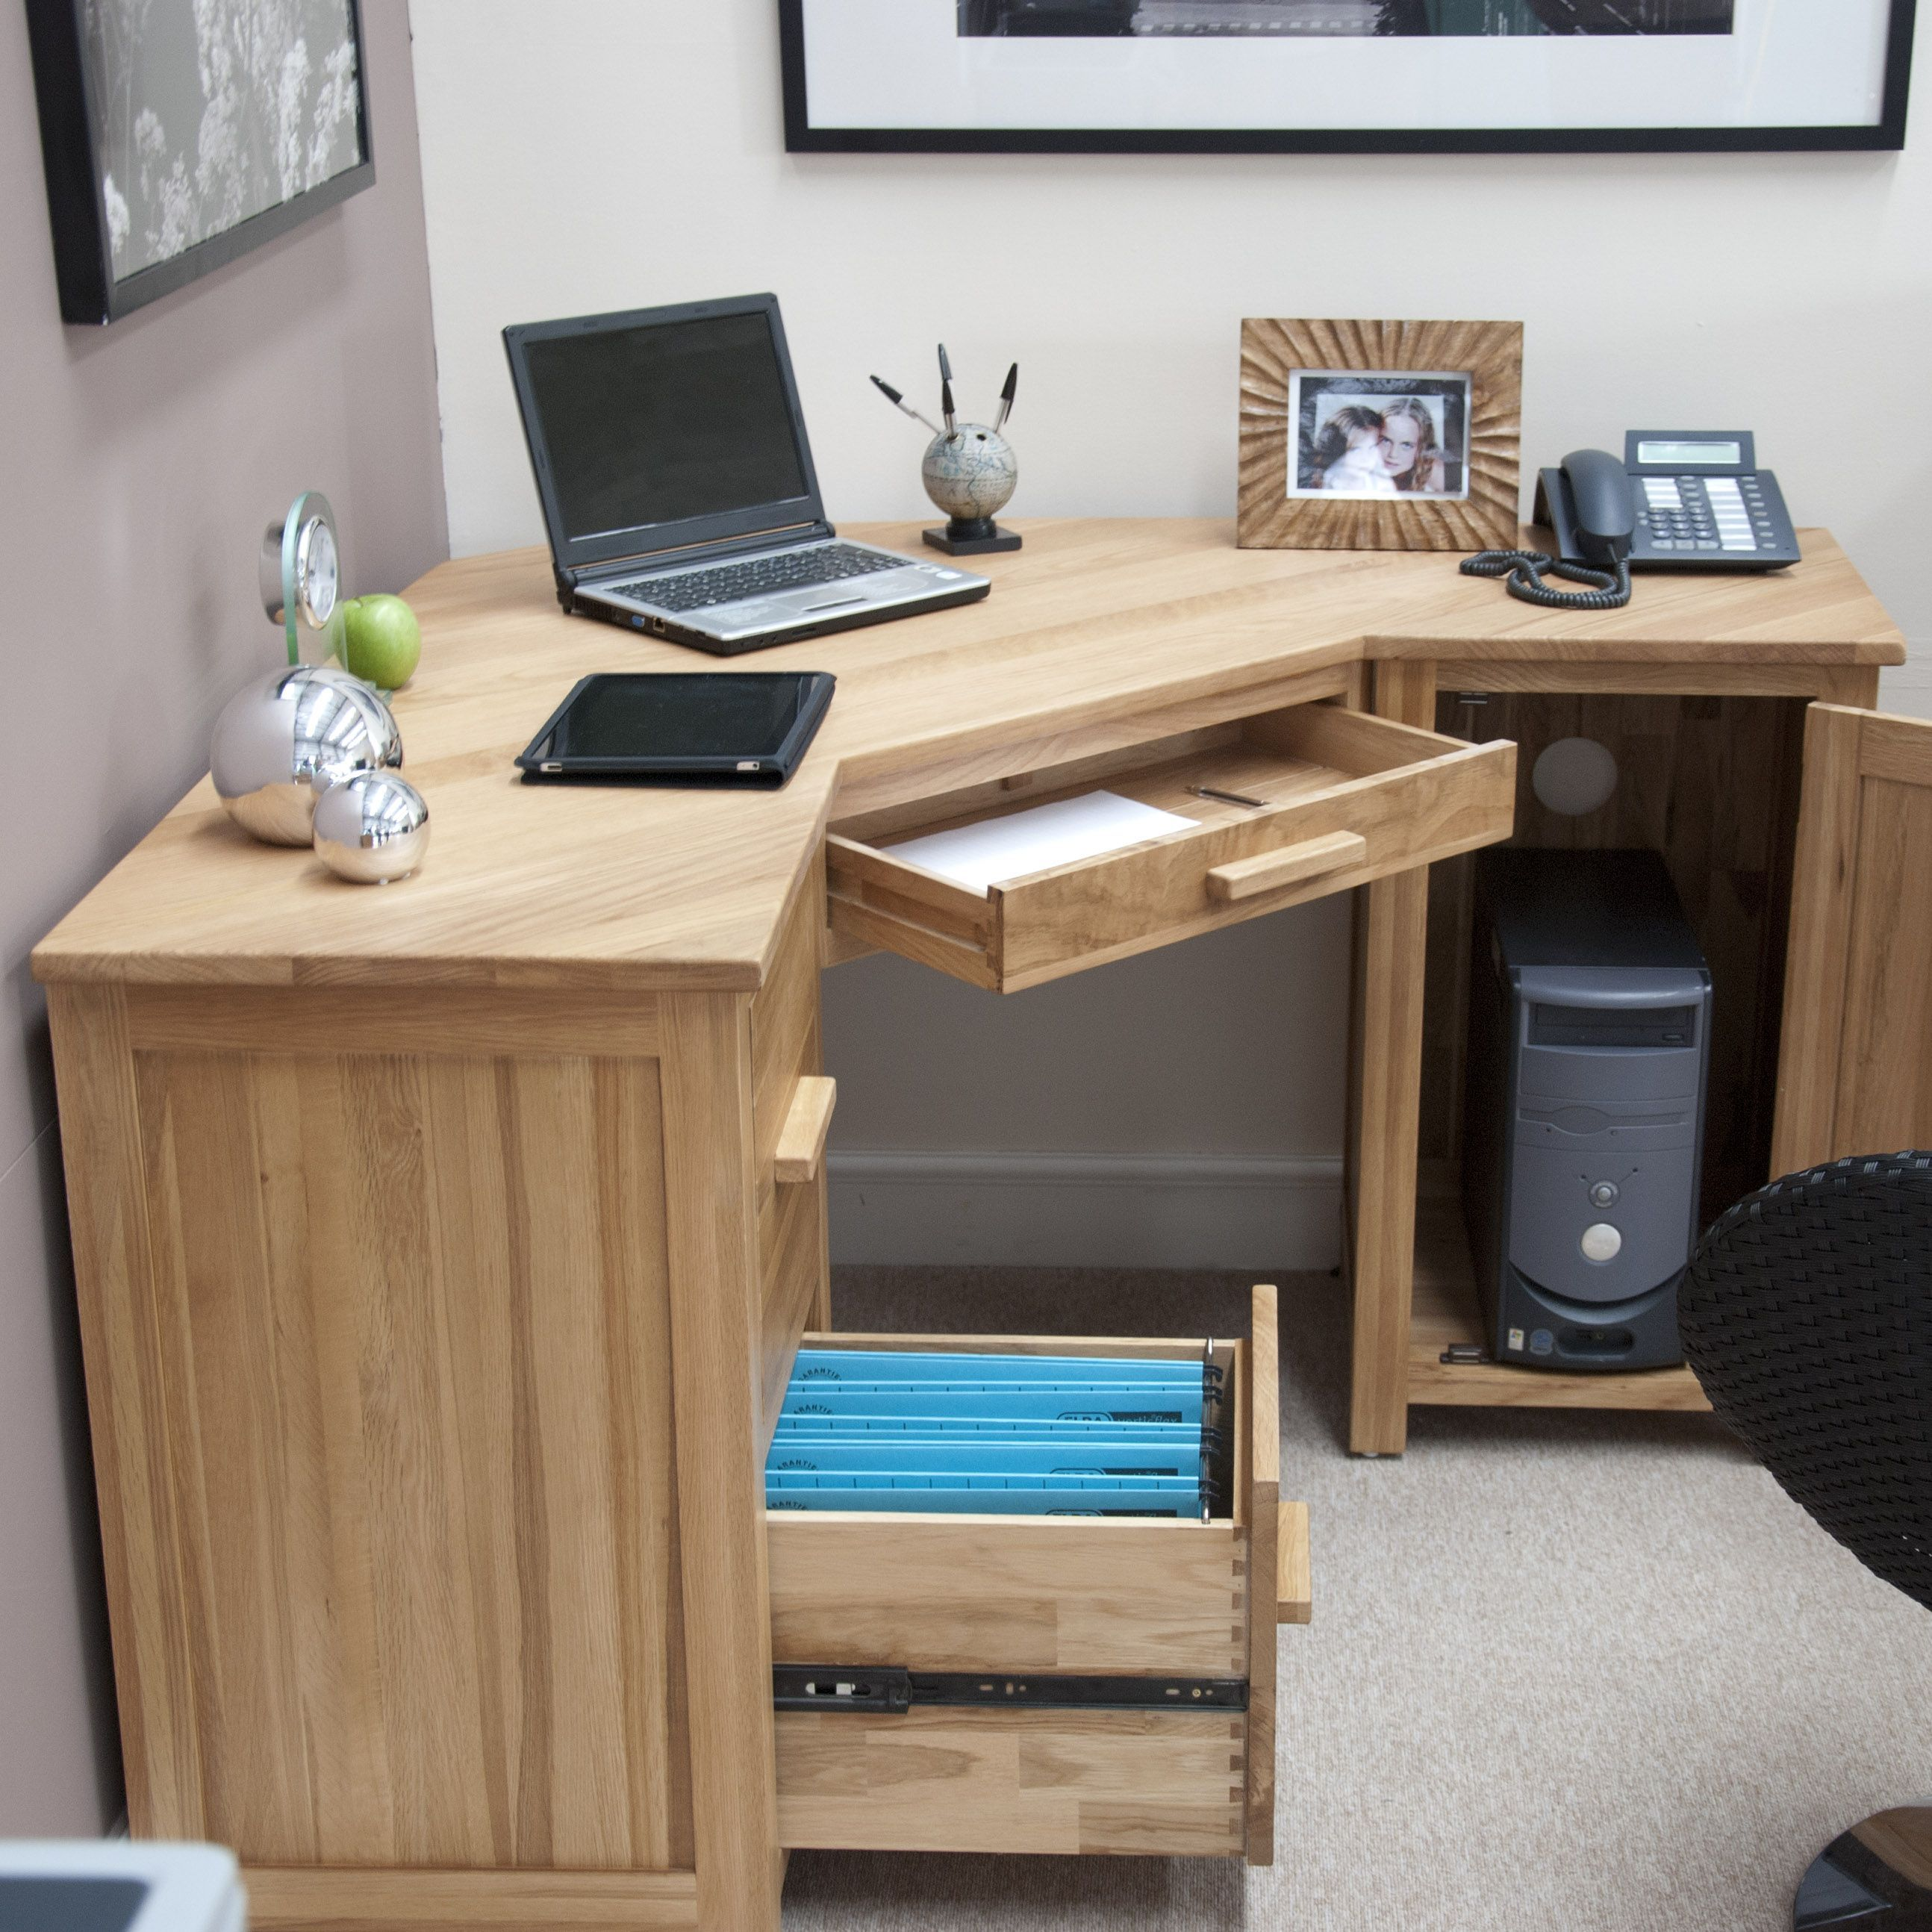 Unvow Com With Images Diy Corner Desk Diy Computer Desk Diy